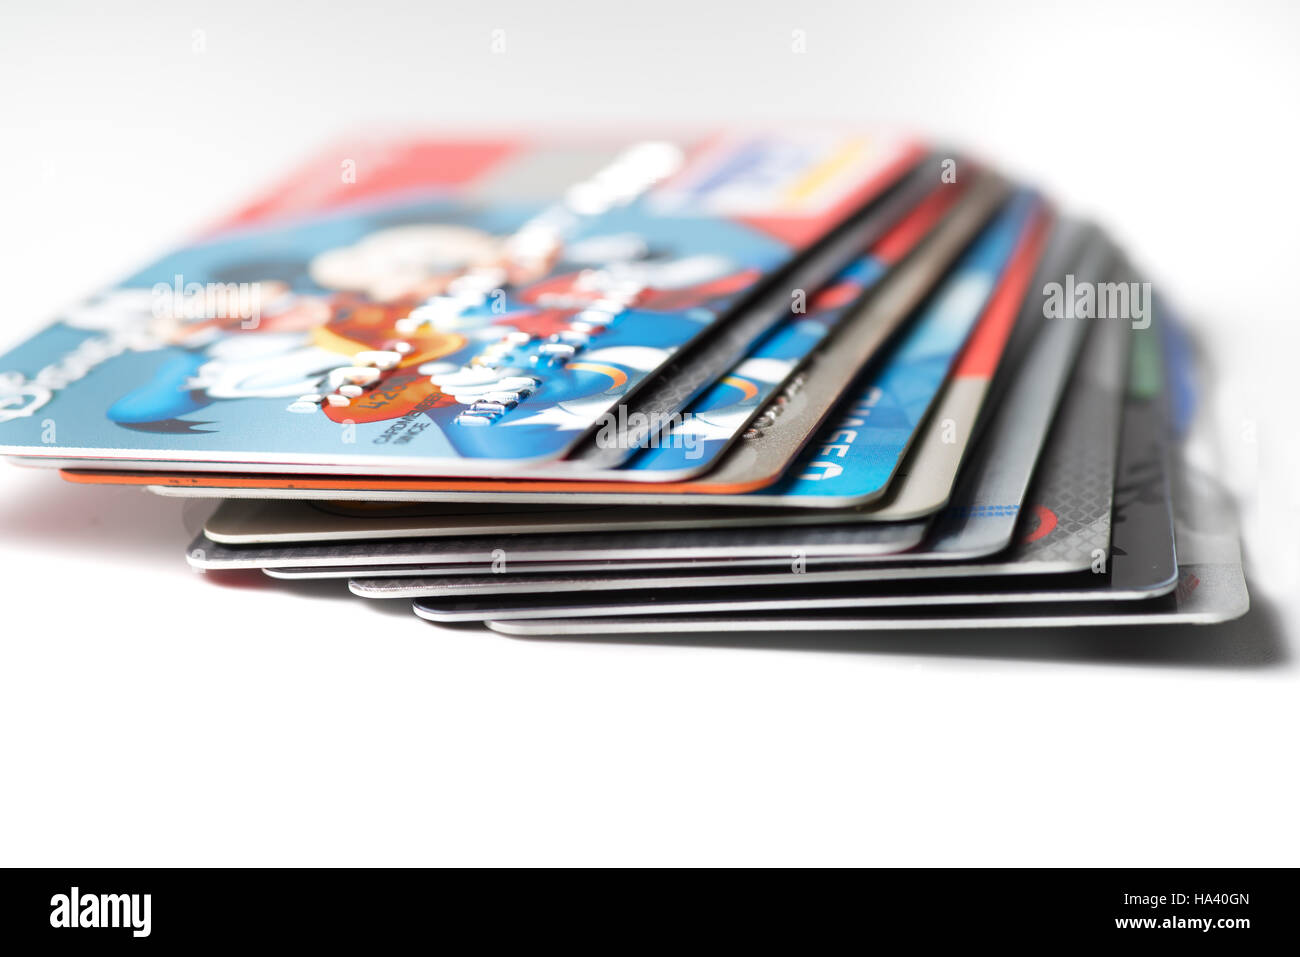 Close up of stack of credit cards on white background,illustrative editorial - Stock Image